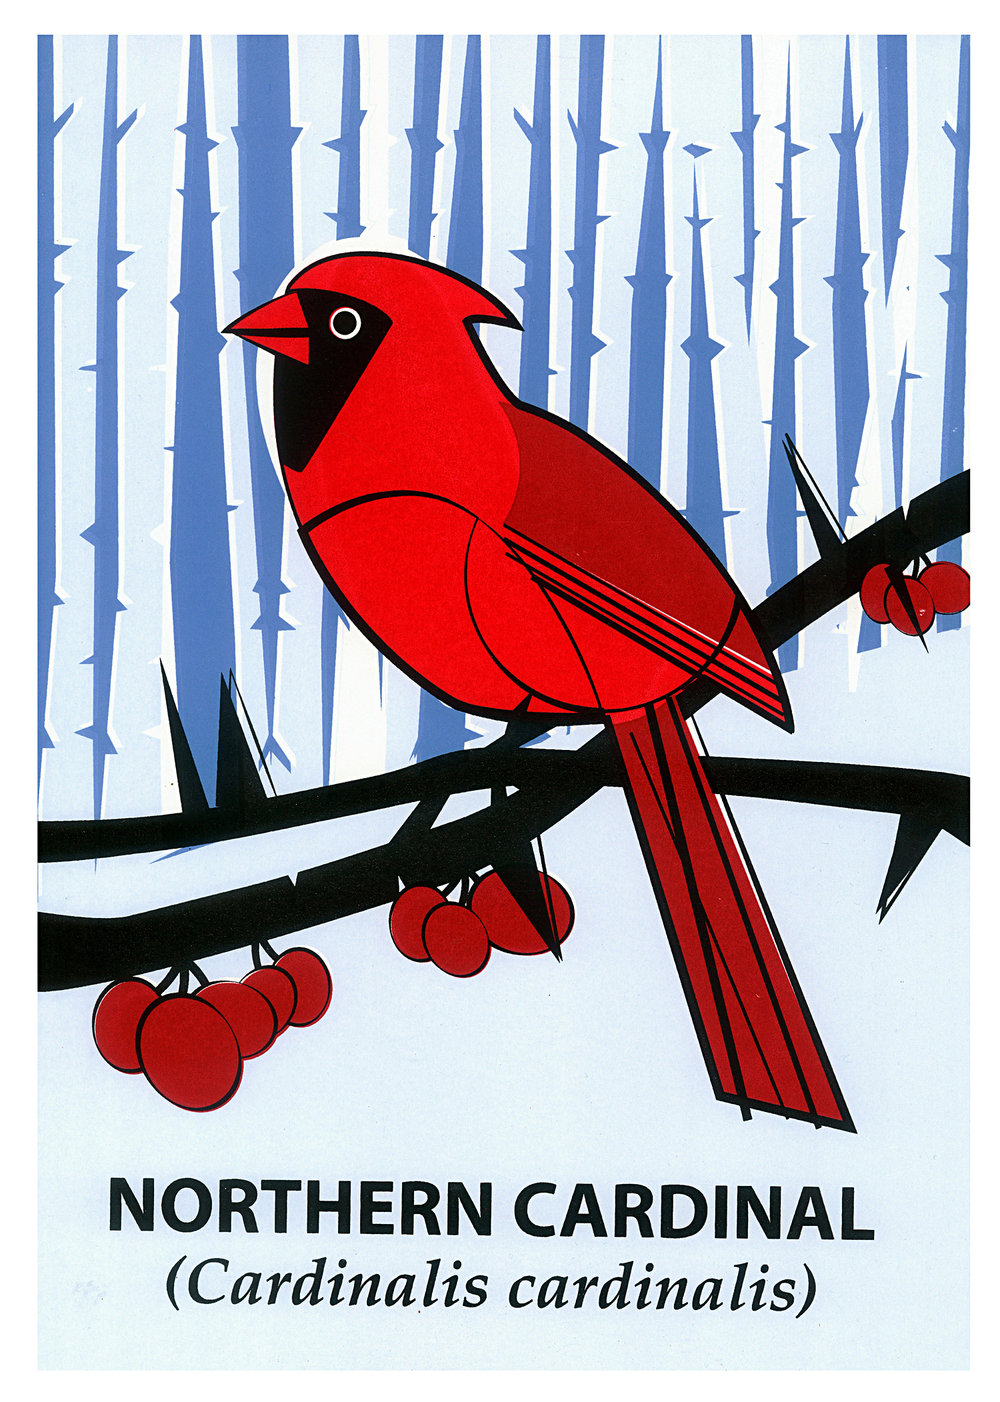 Limited Edition Northern Cardinal Screenprint